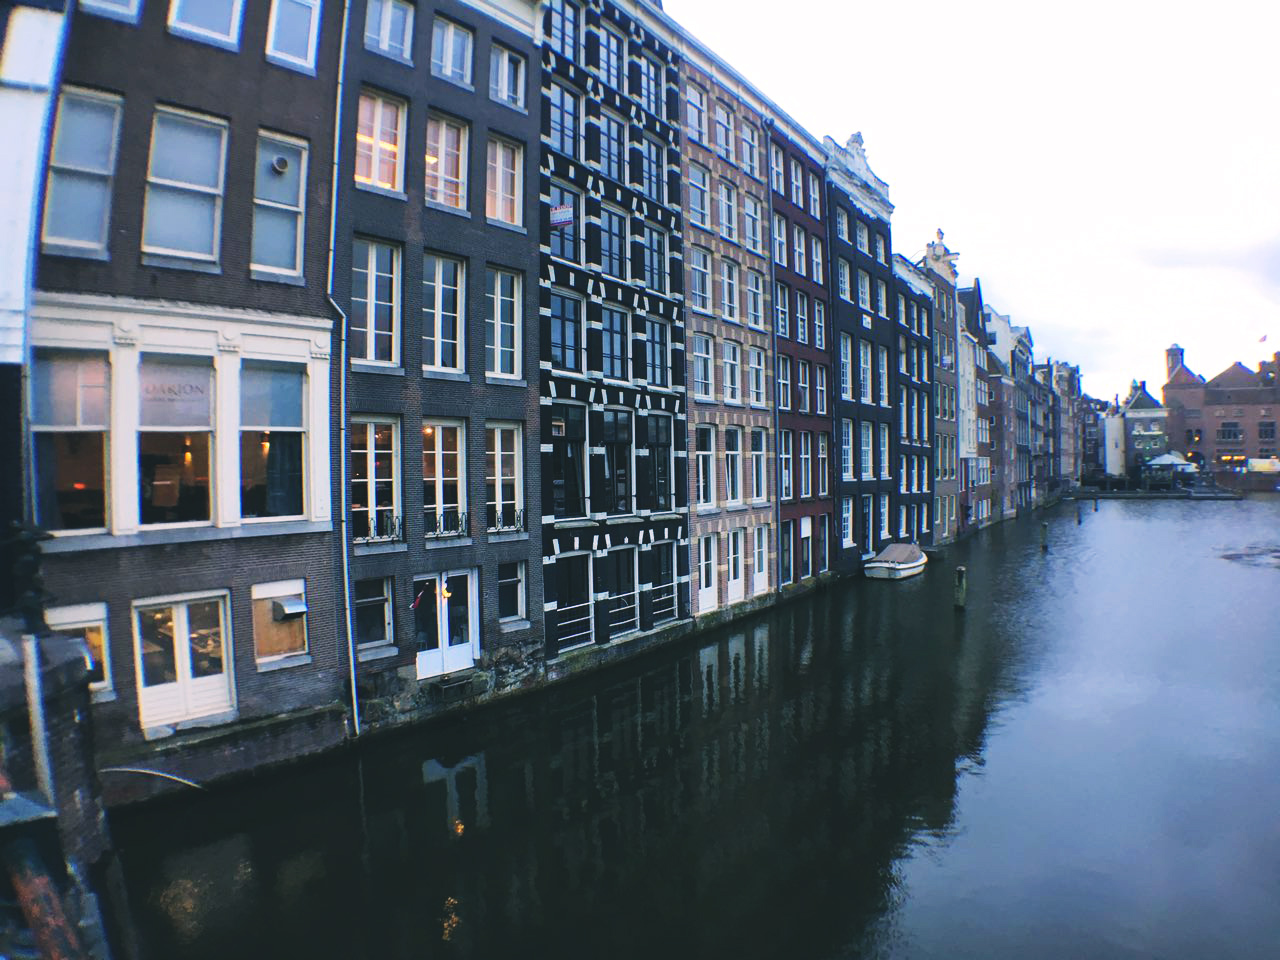 Amsterdam famous canals